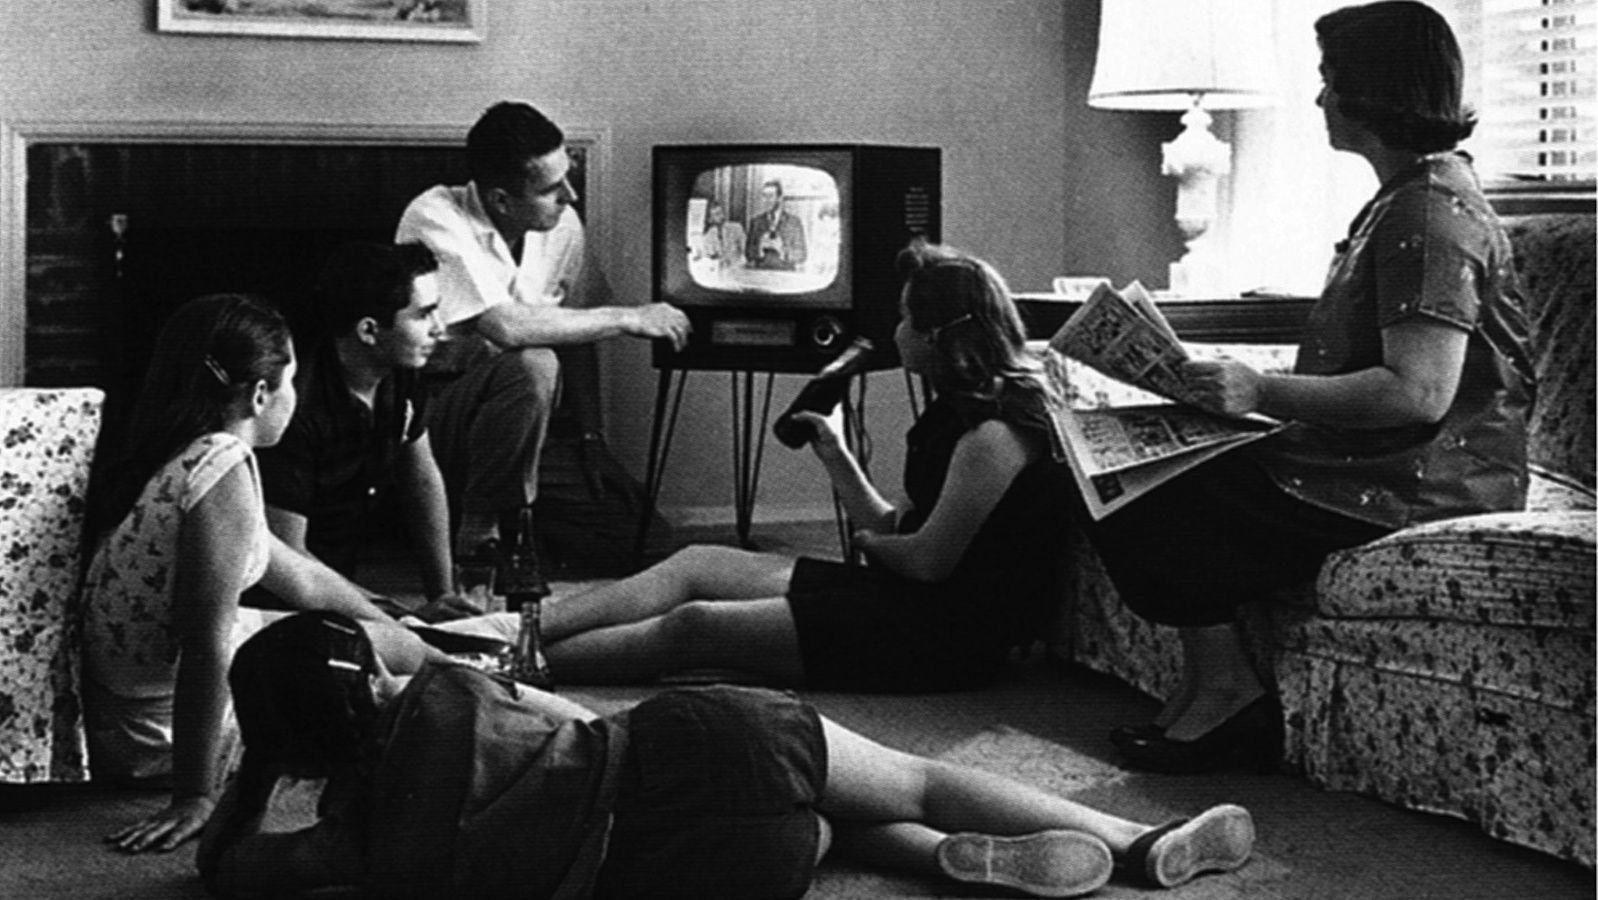 Watch: The first TV commercial, which aired 75 years ago